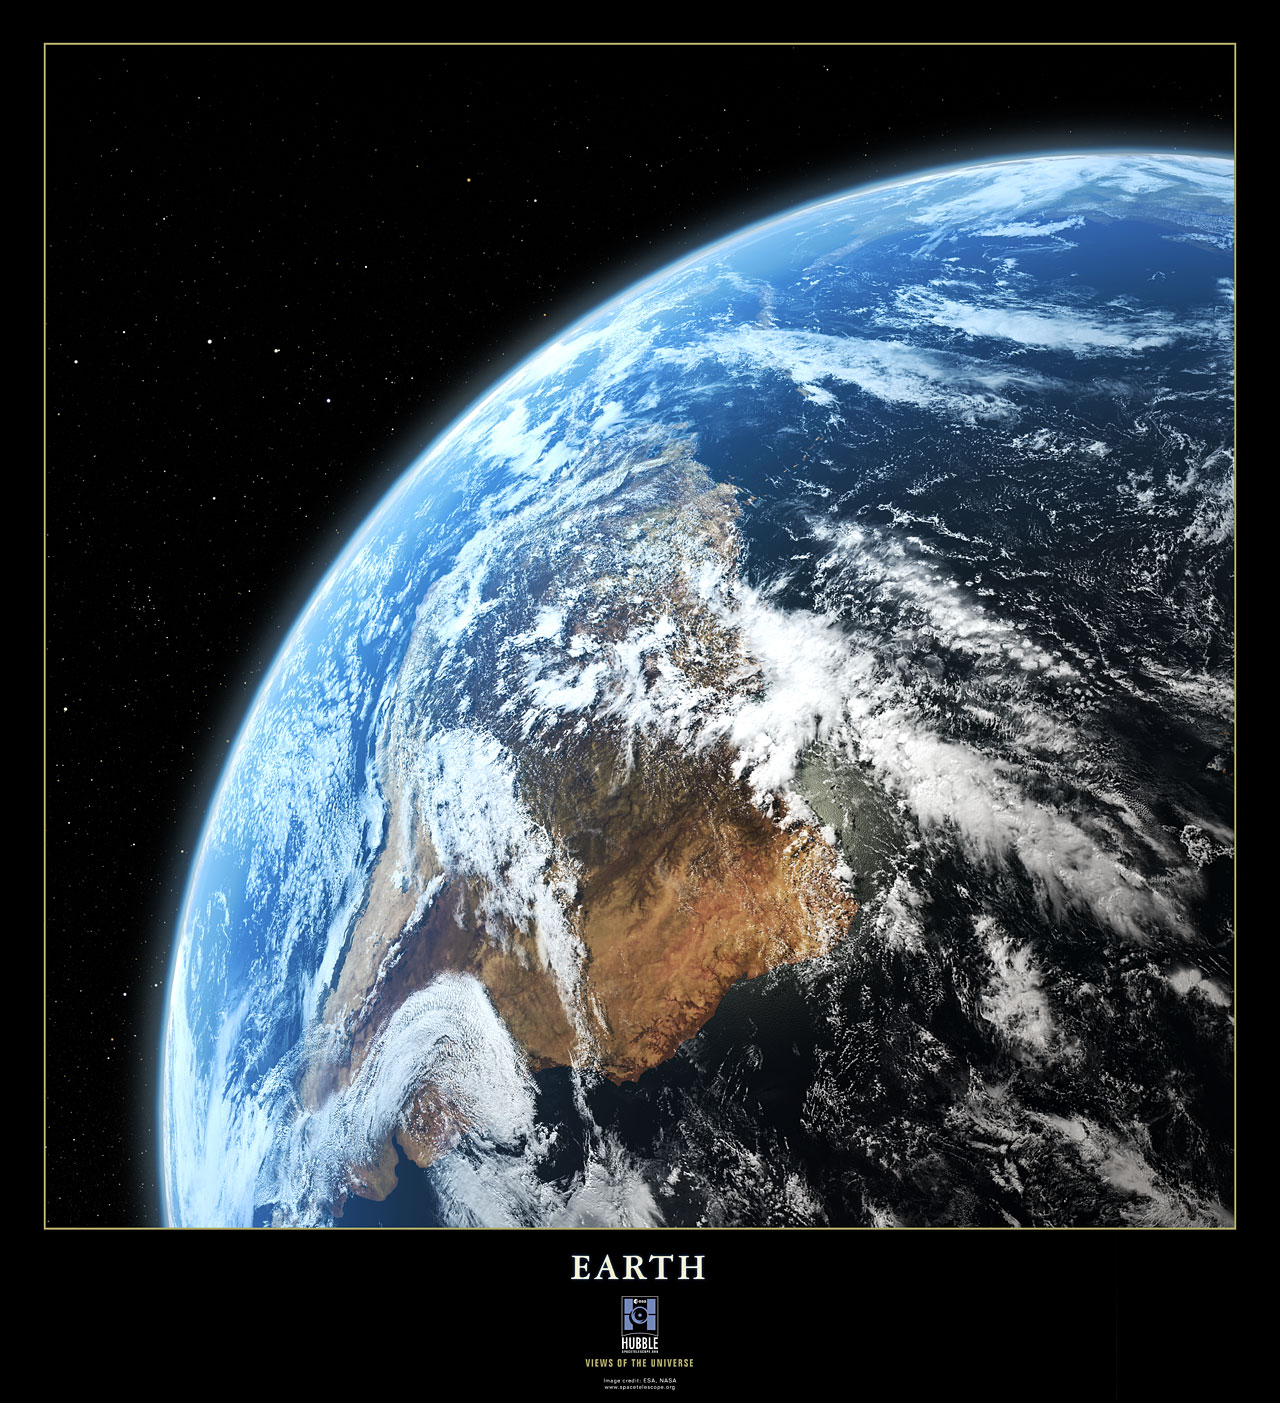 earth hubble space - photo #5